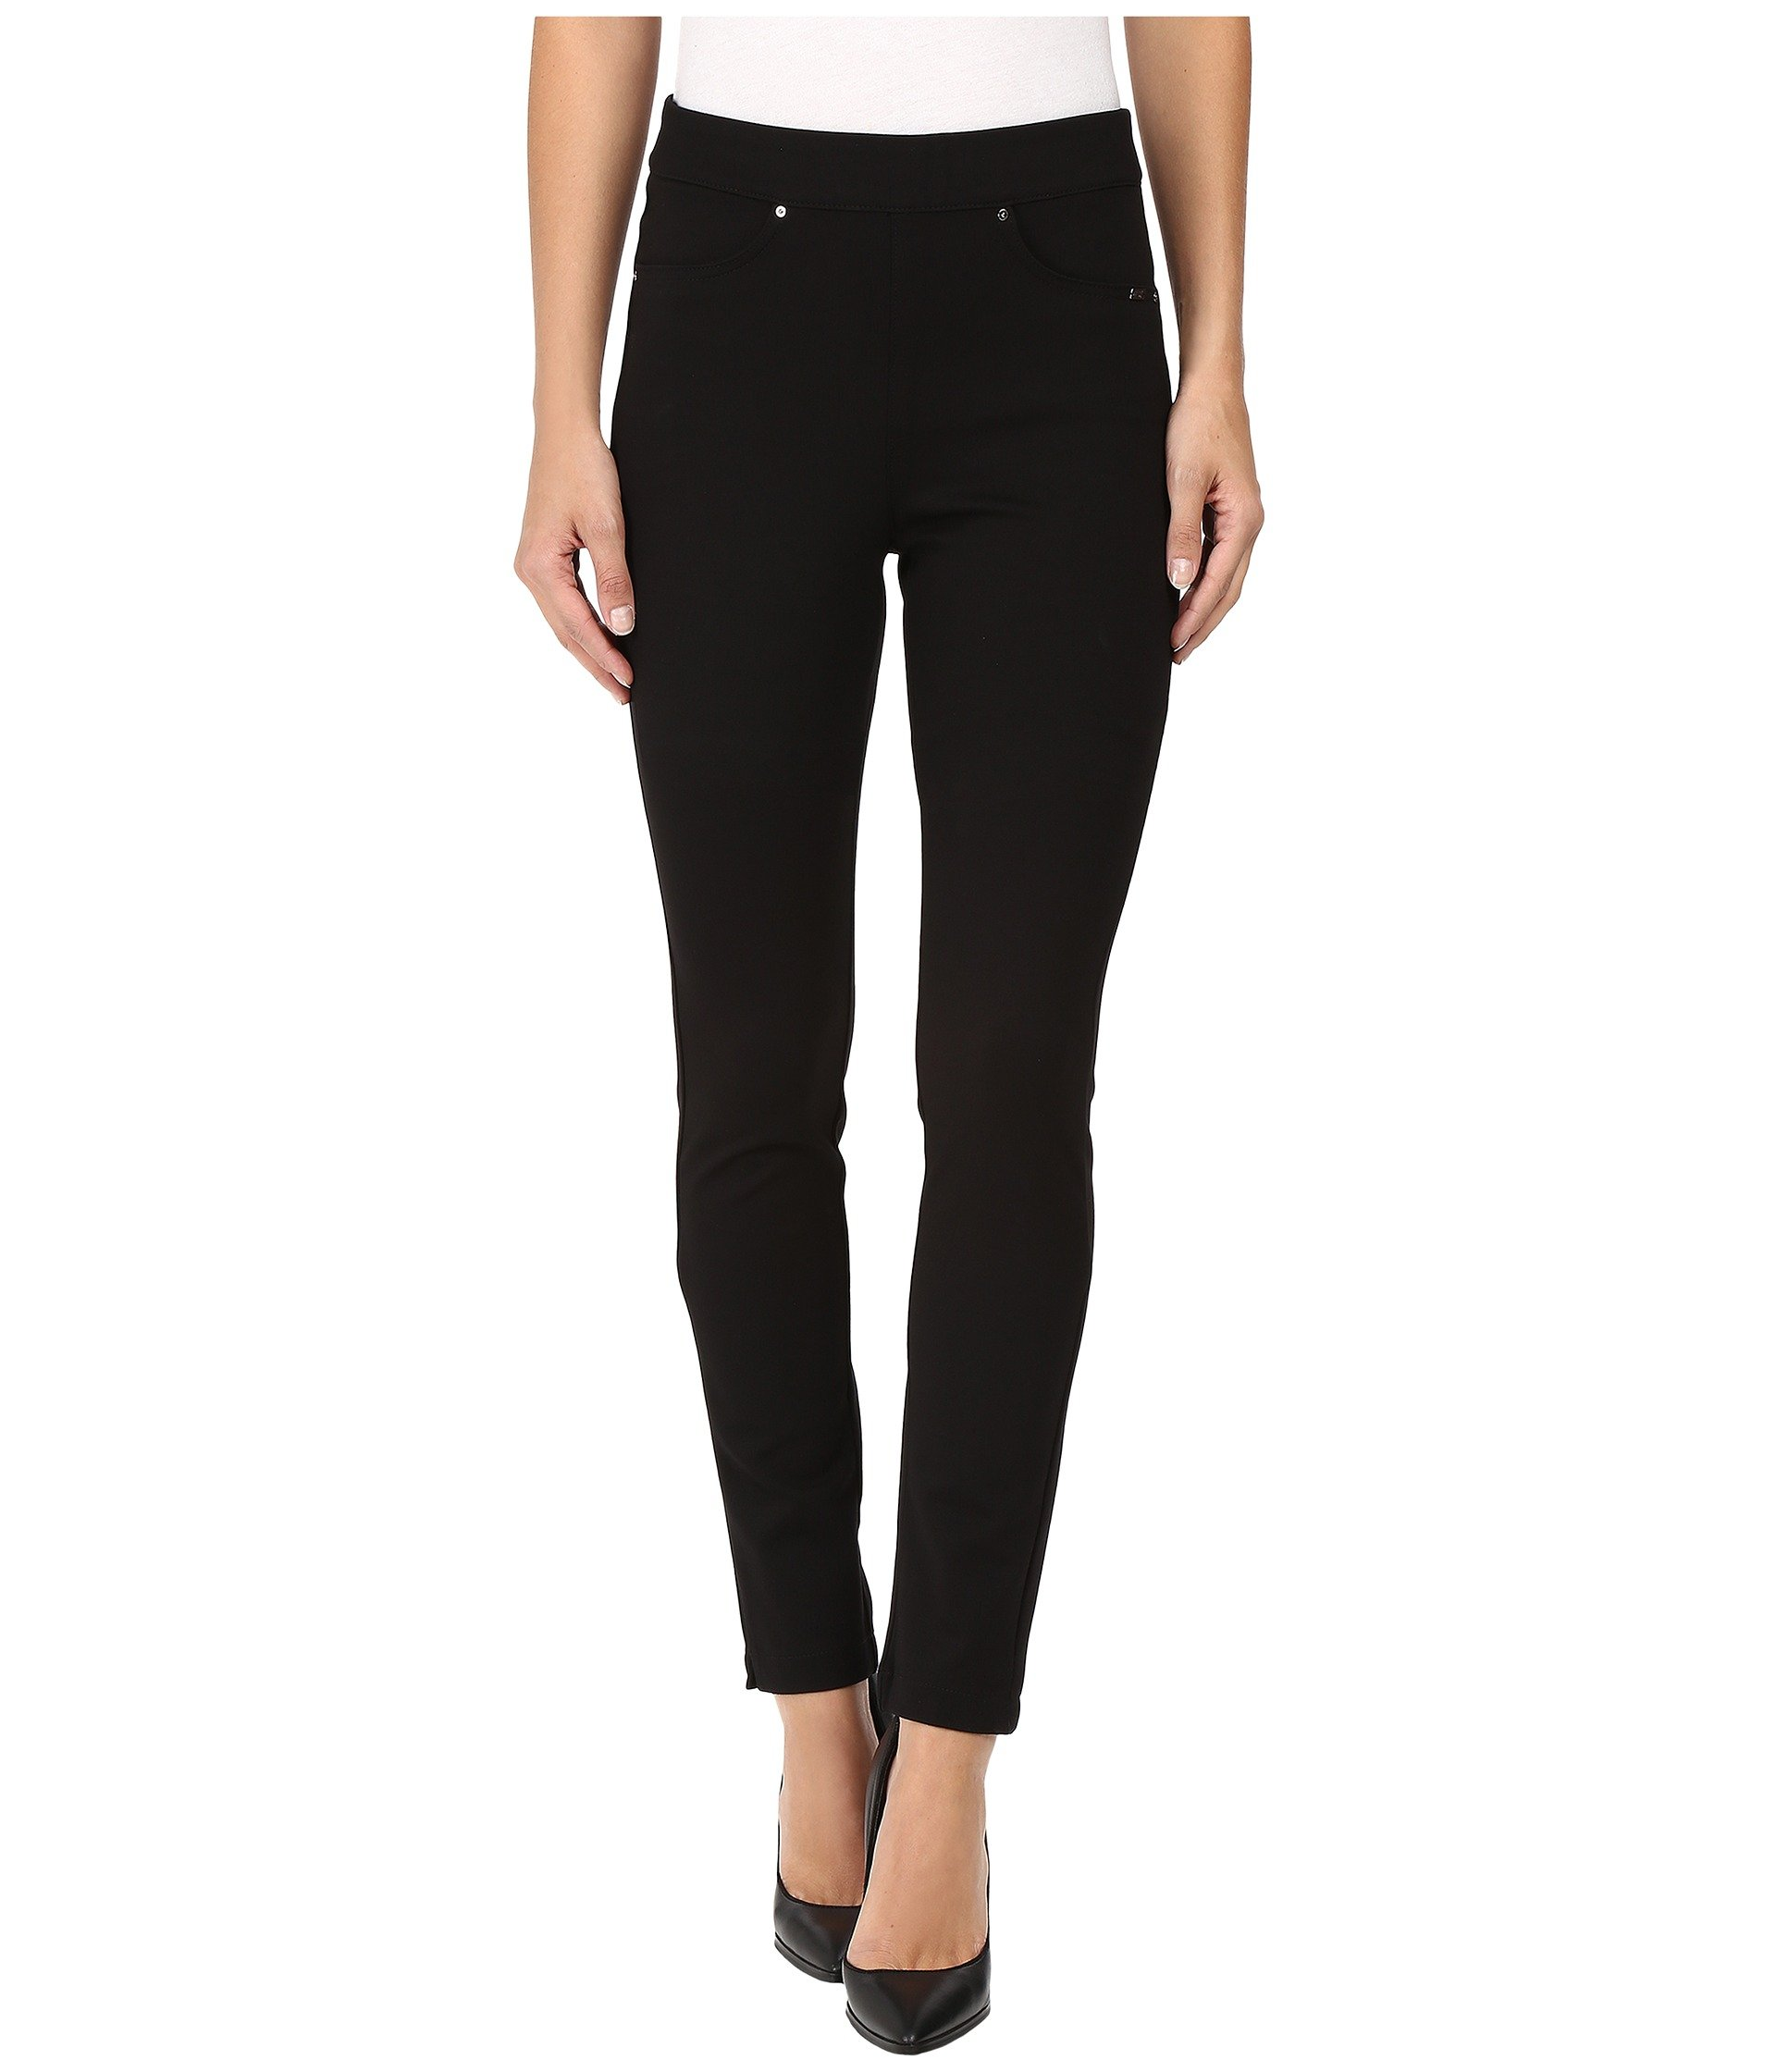 Slim jeggings best of shopping